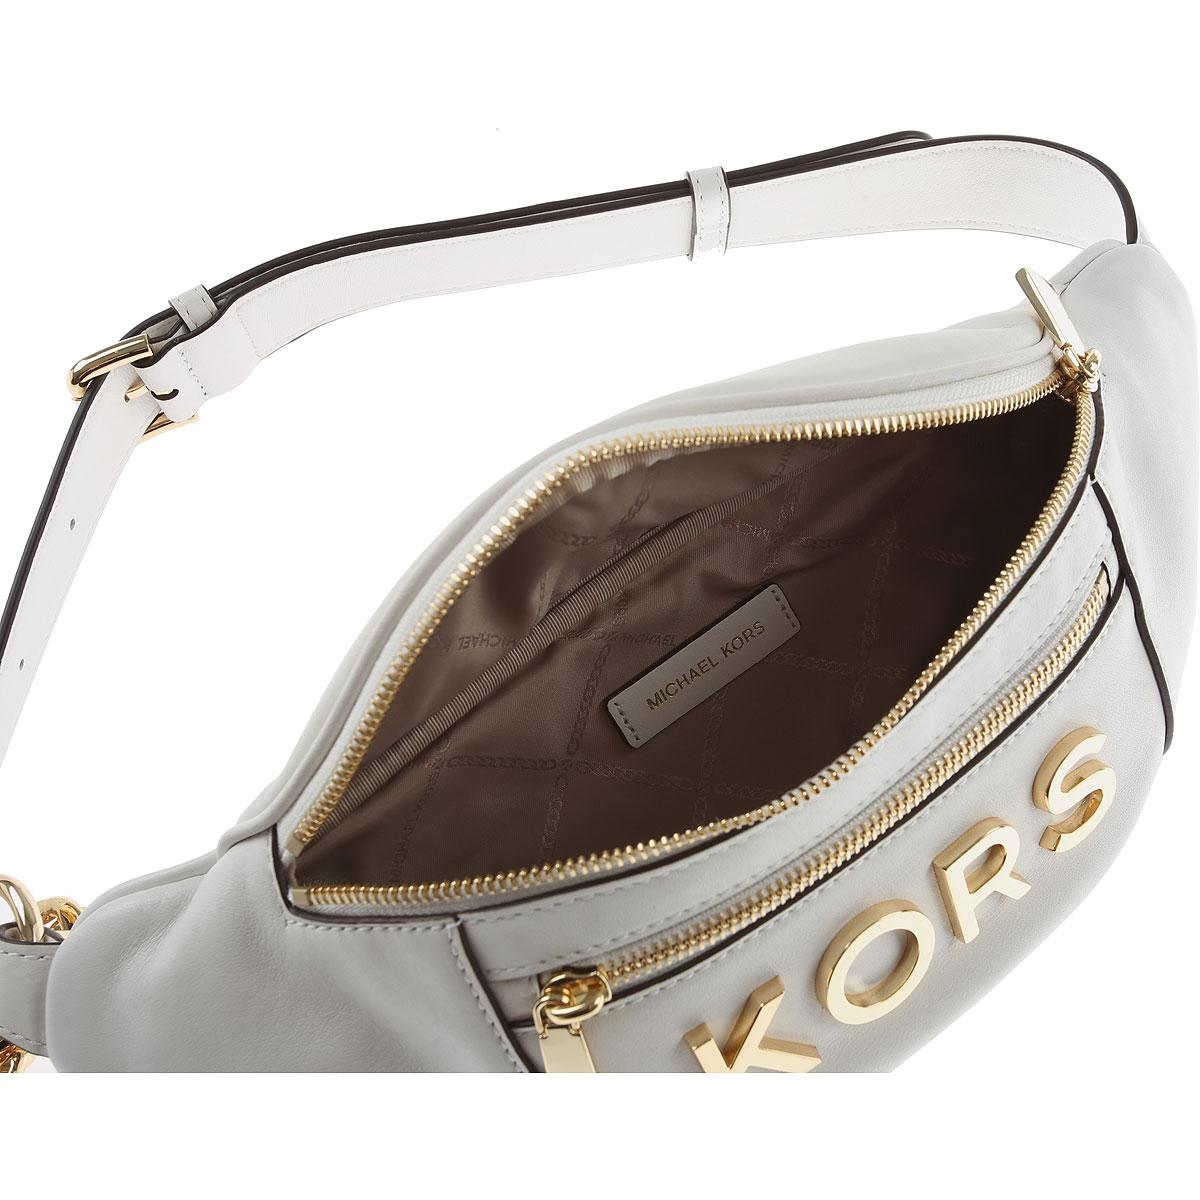 f37018465cf0 Michael Kors - White Shoulder Bag For Women - Lyst. View fullscreen